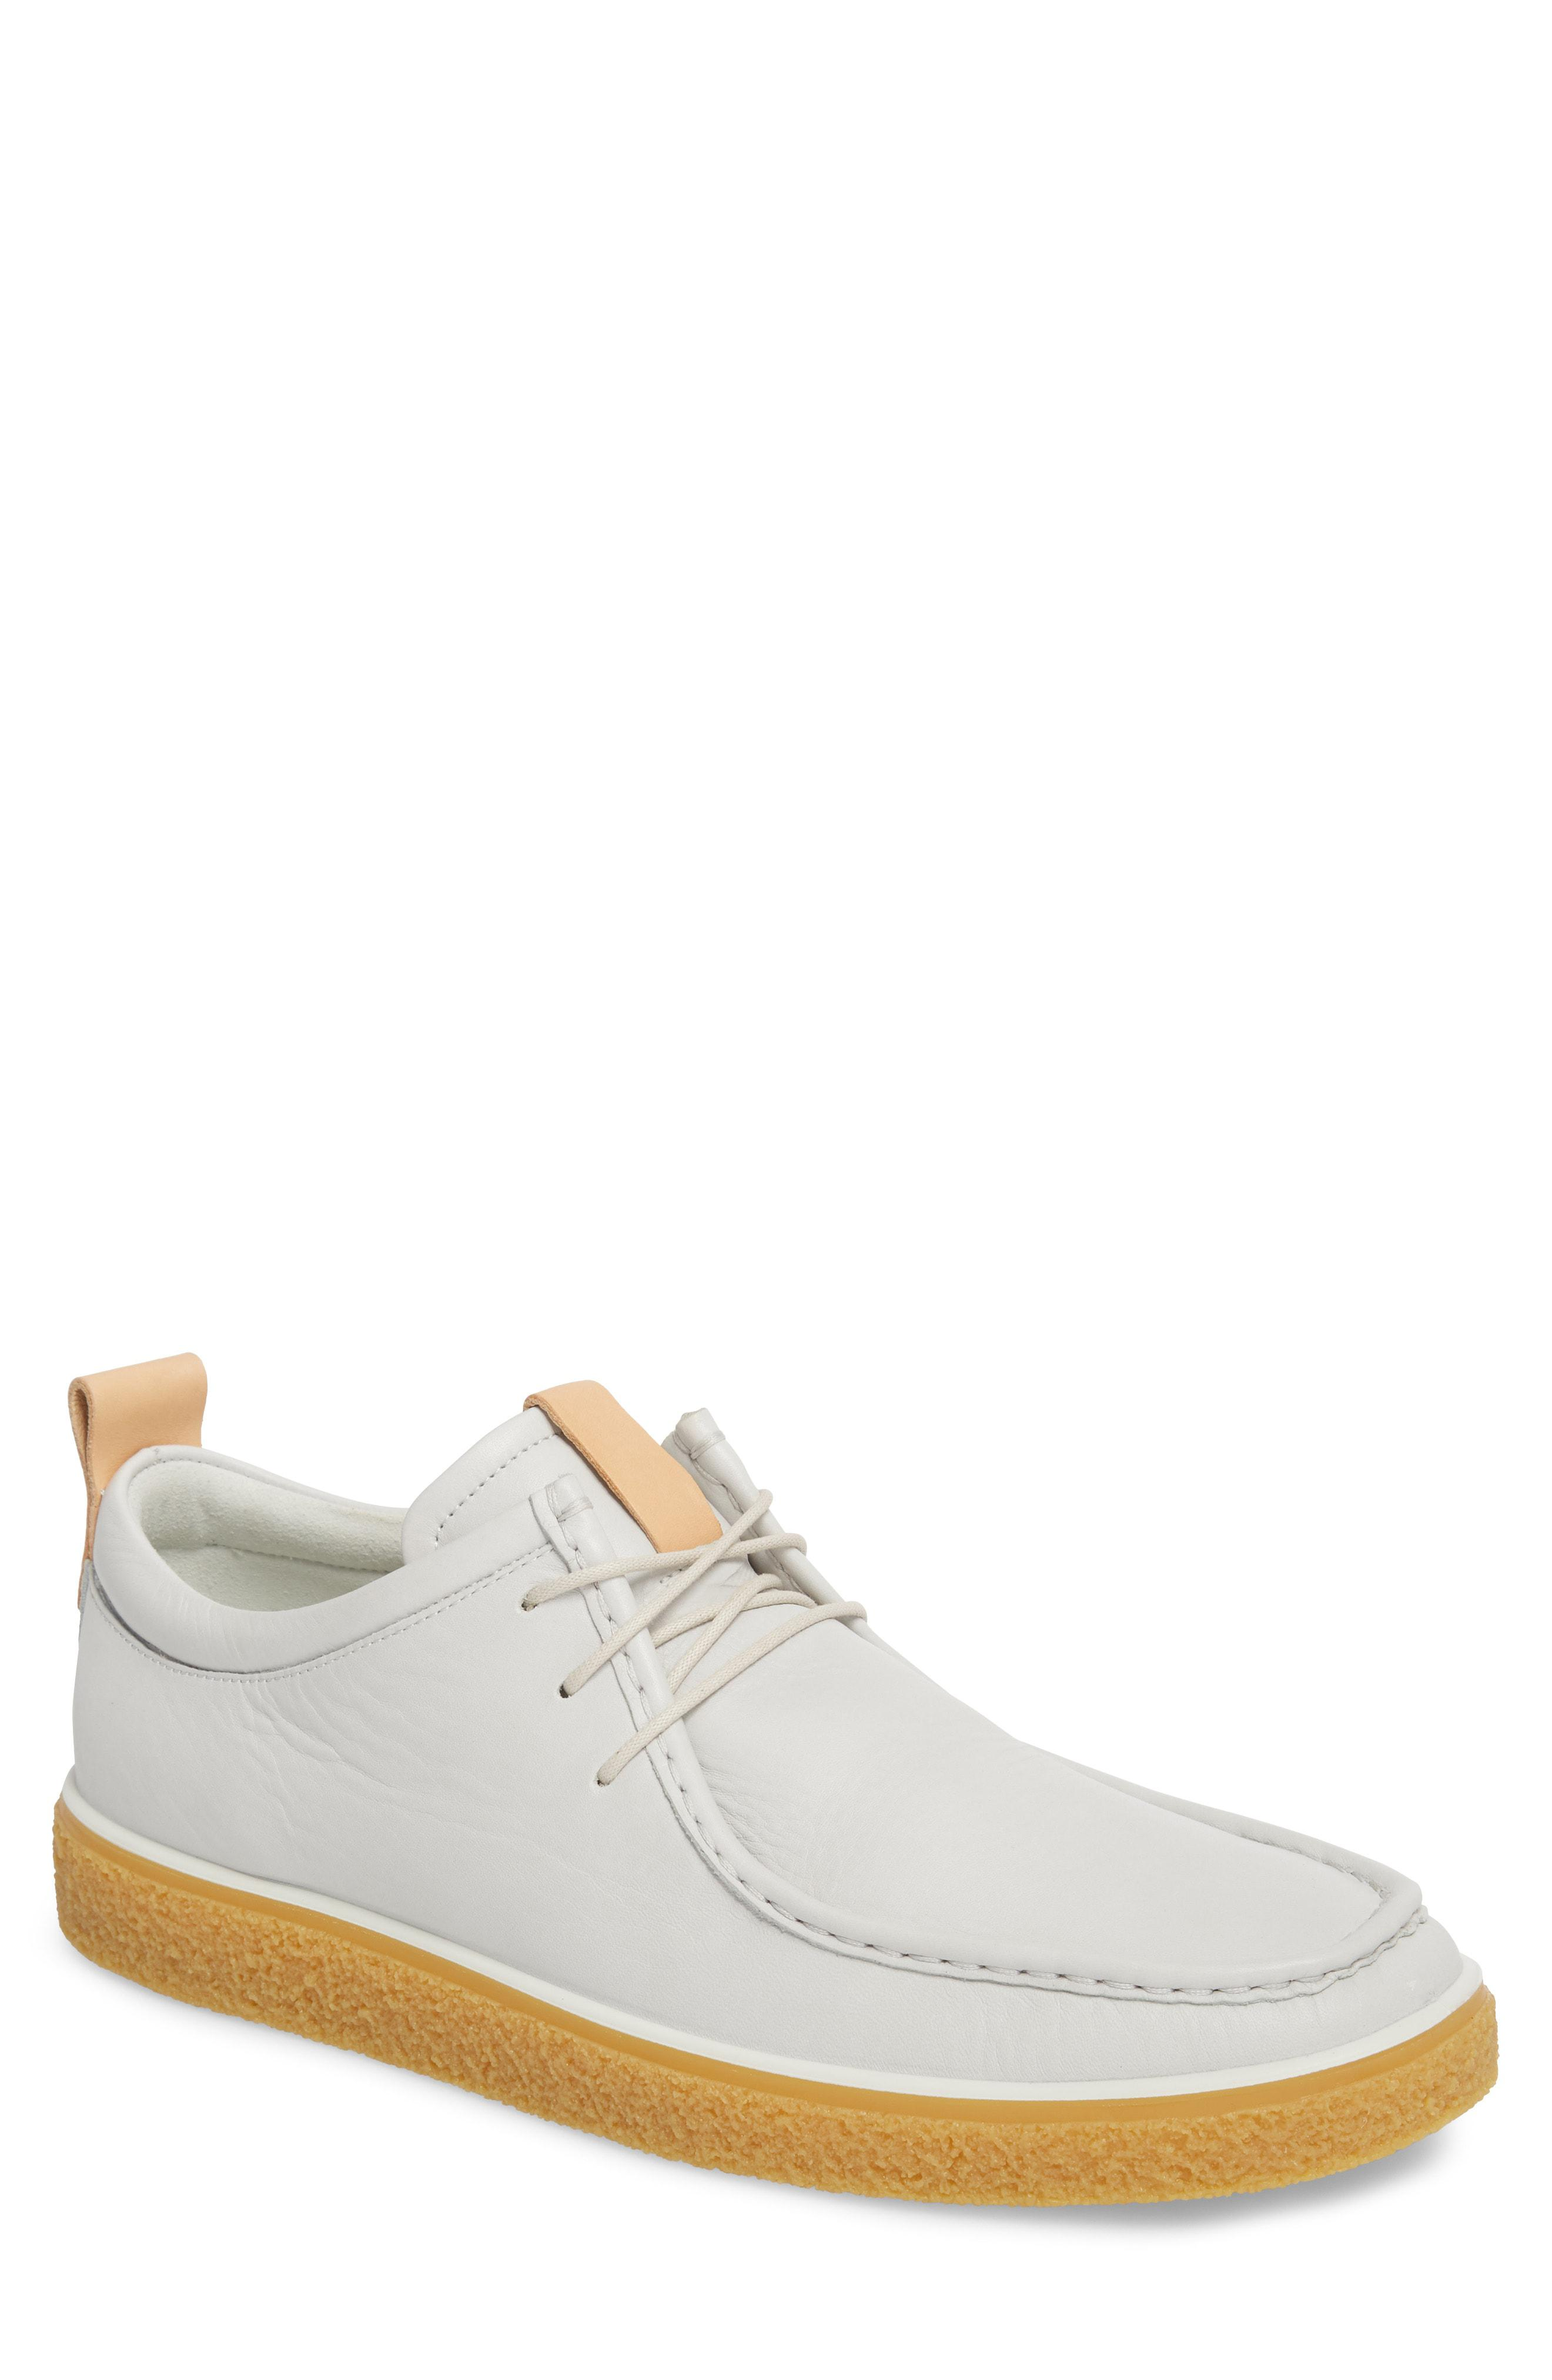 00ab2ee5ebb0 Ecco Crepetray Moc Toe Low Chukka Boot in White for Men - Lyst